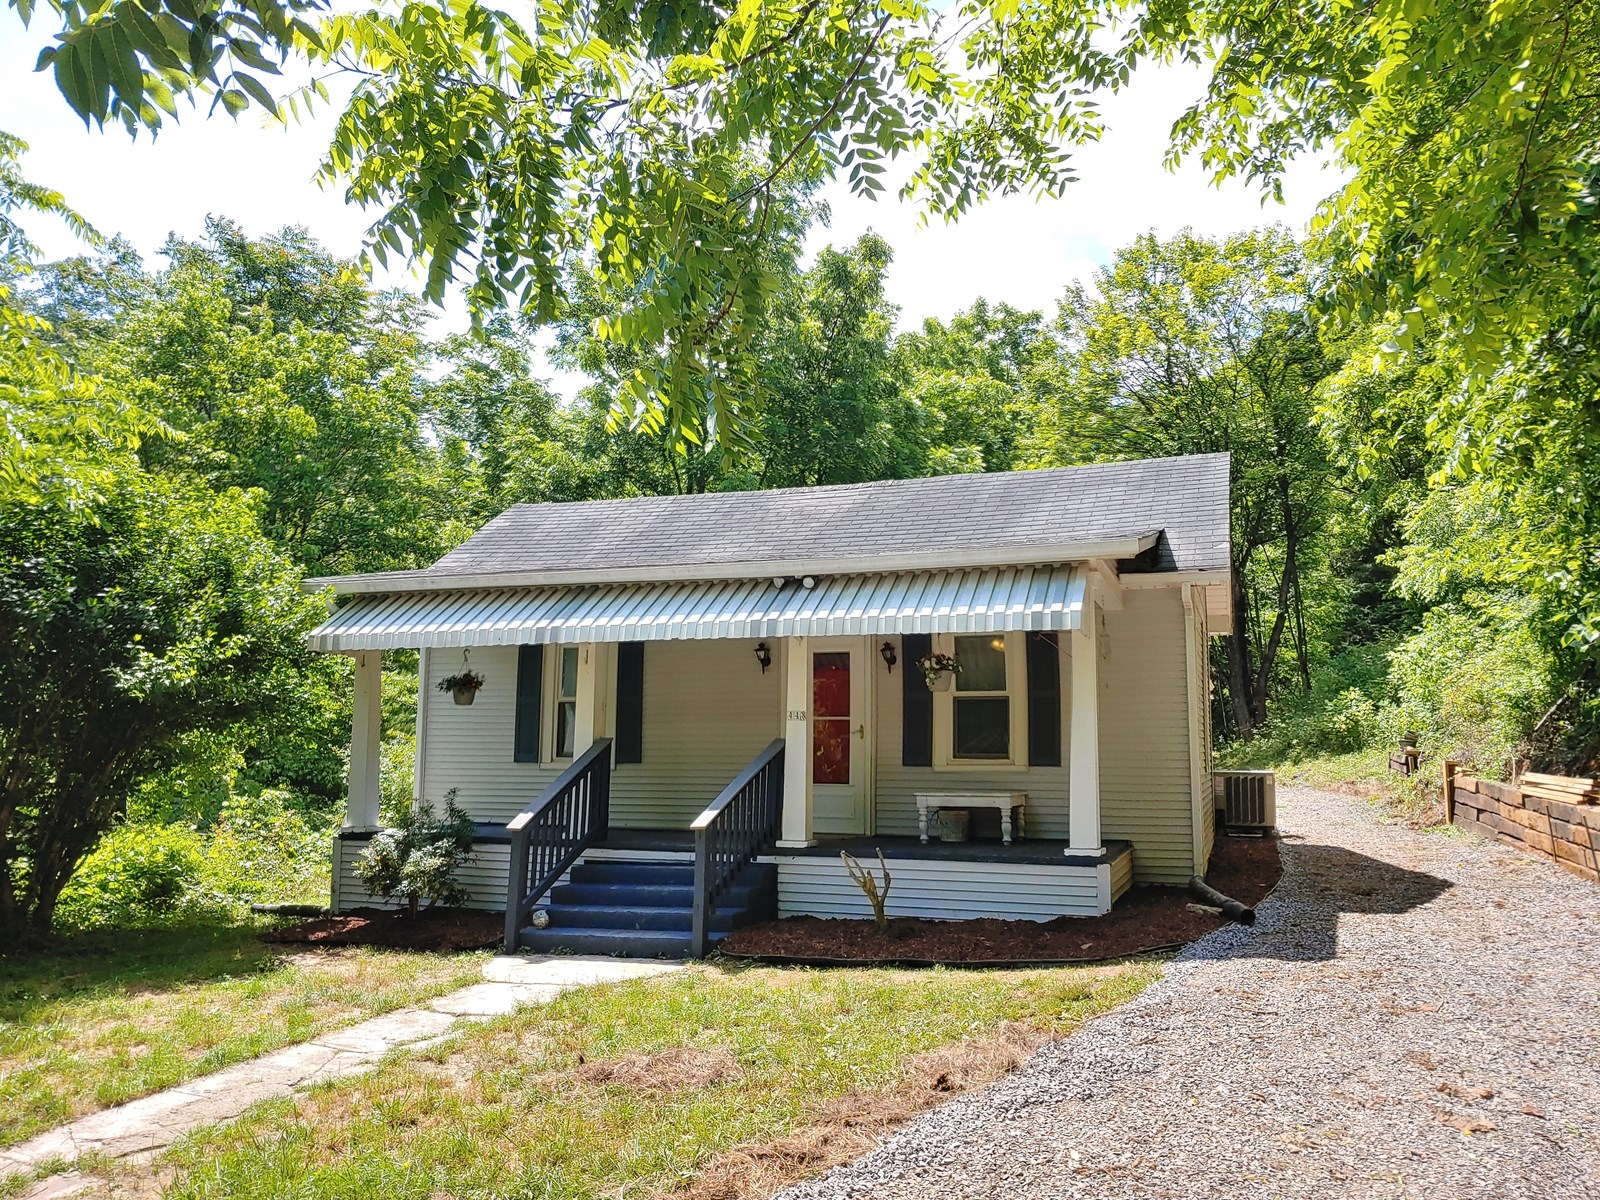 Home for Sale in Shawsville VA!